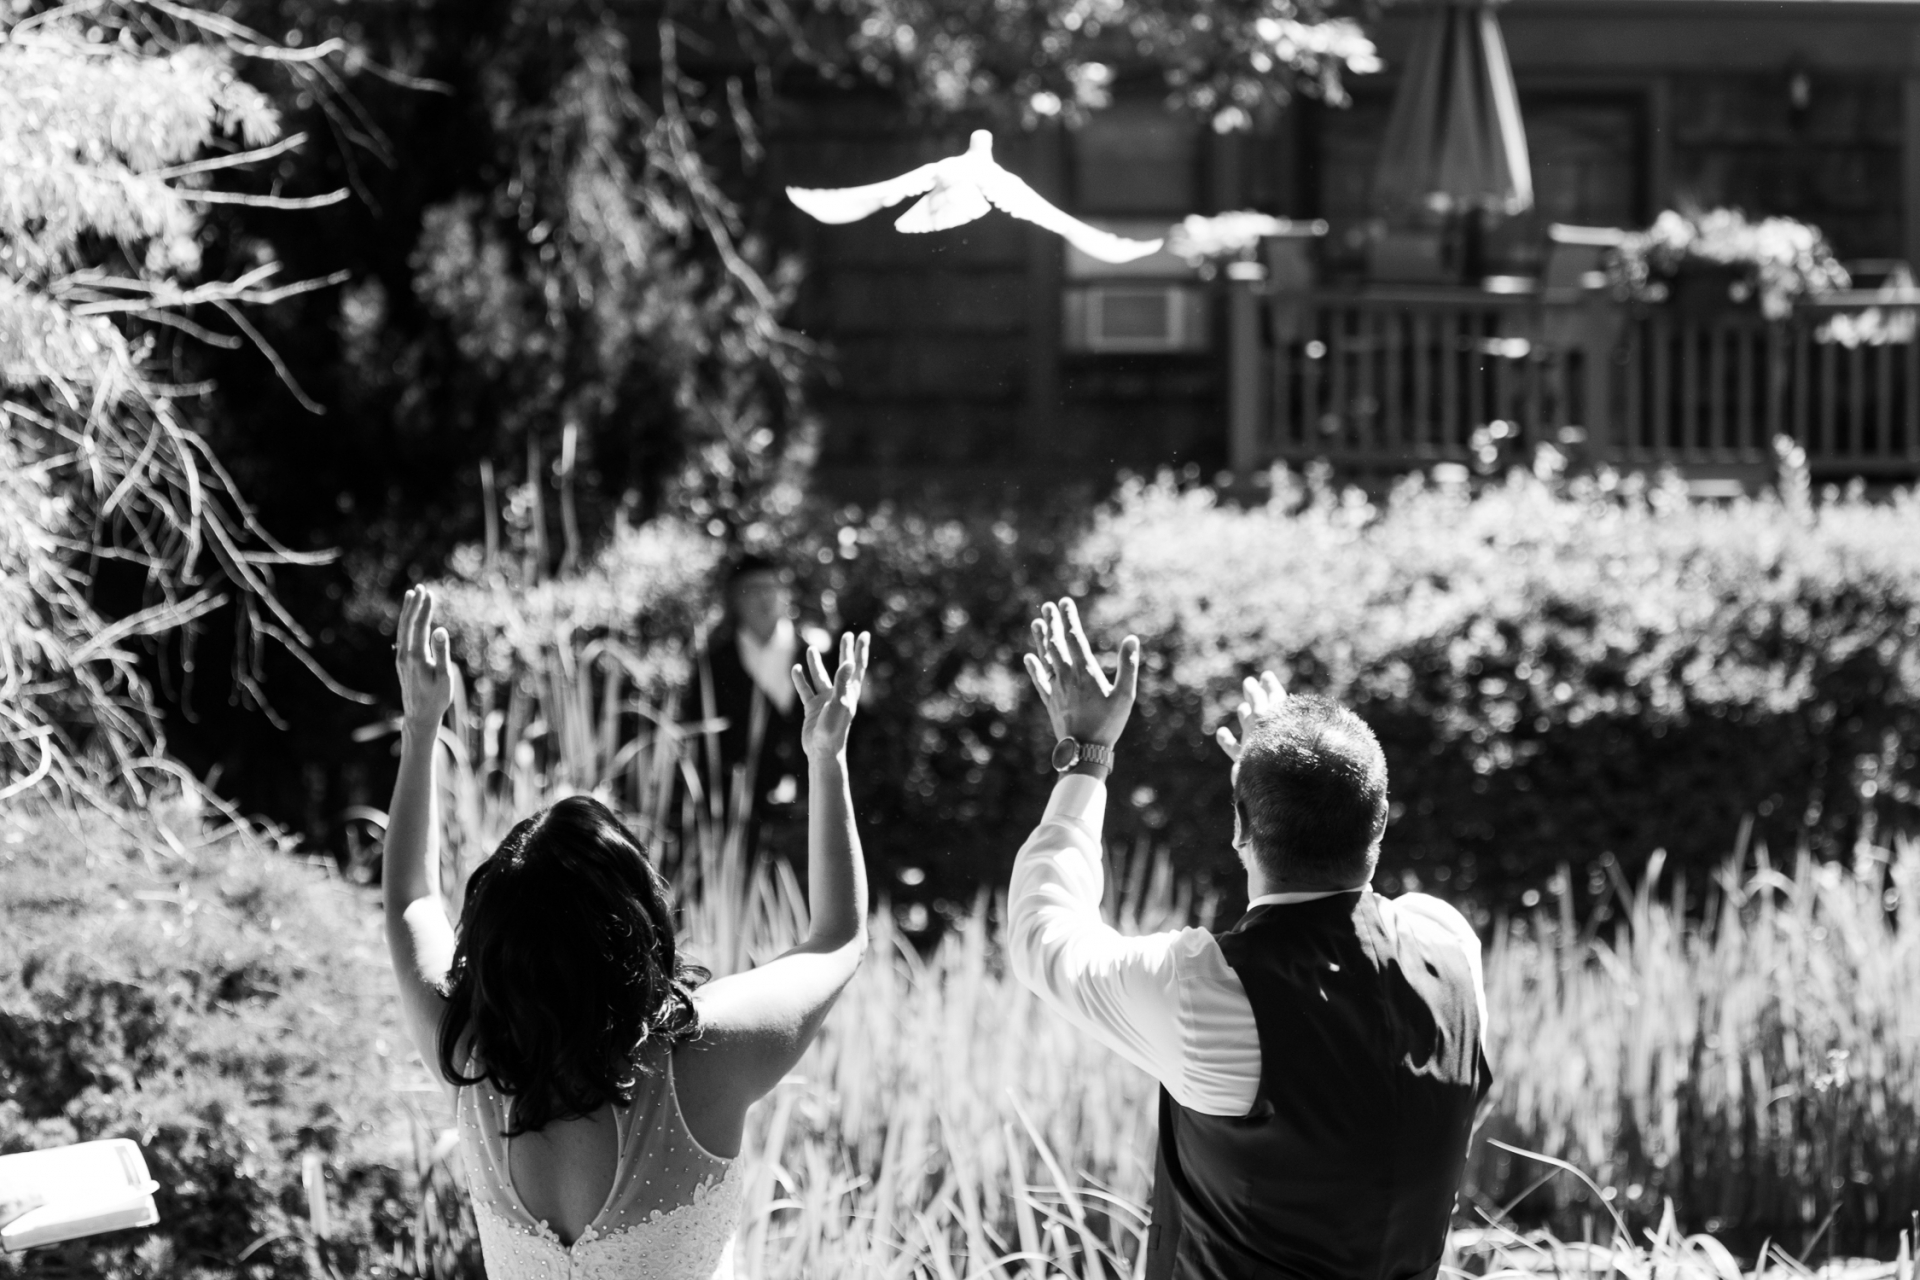 CO Backyard Wedding Ceremony Image - Outdoor Dove Release Image | the couple released a dove into the air